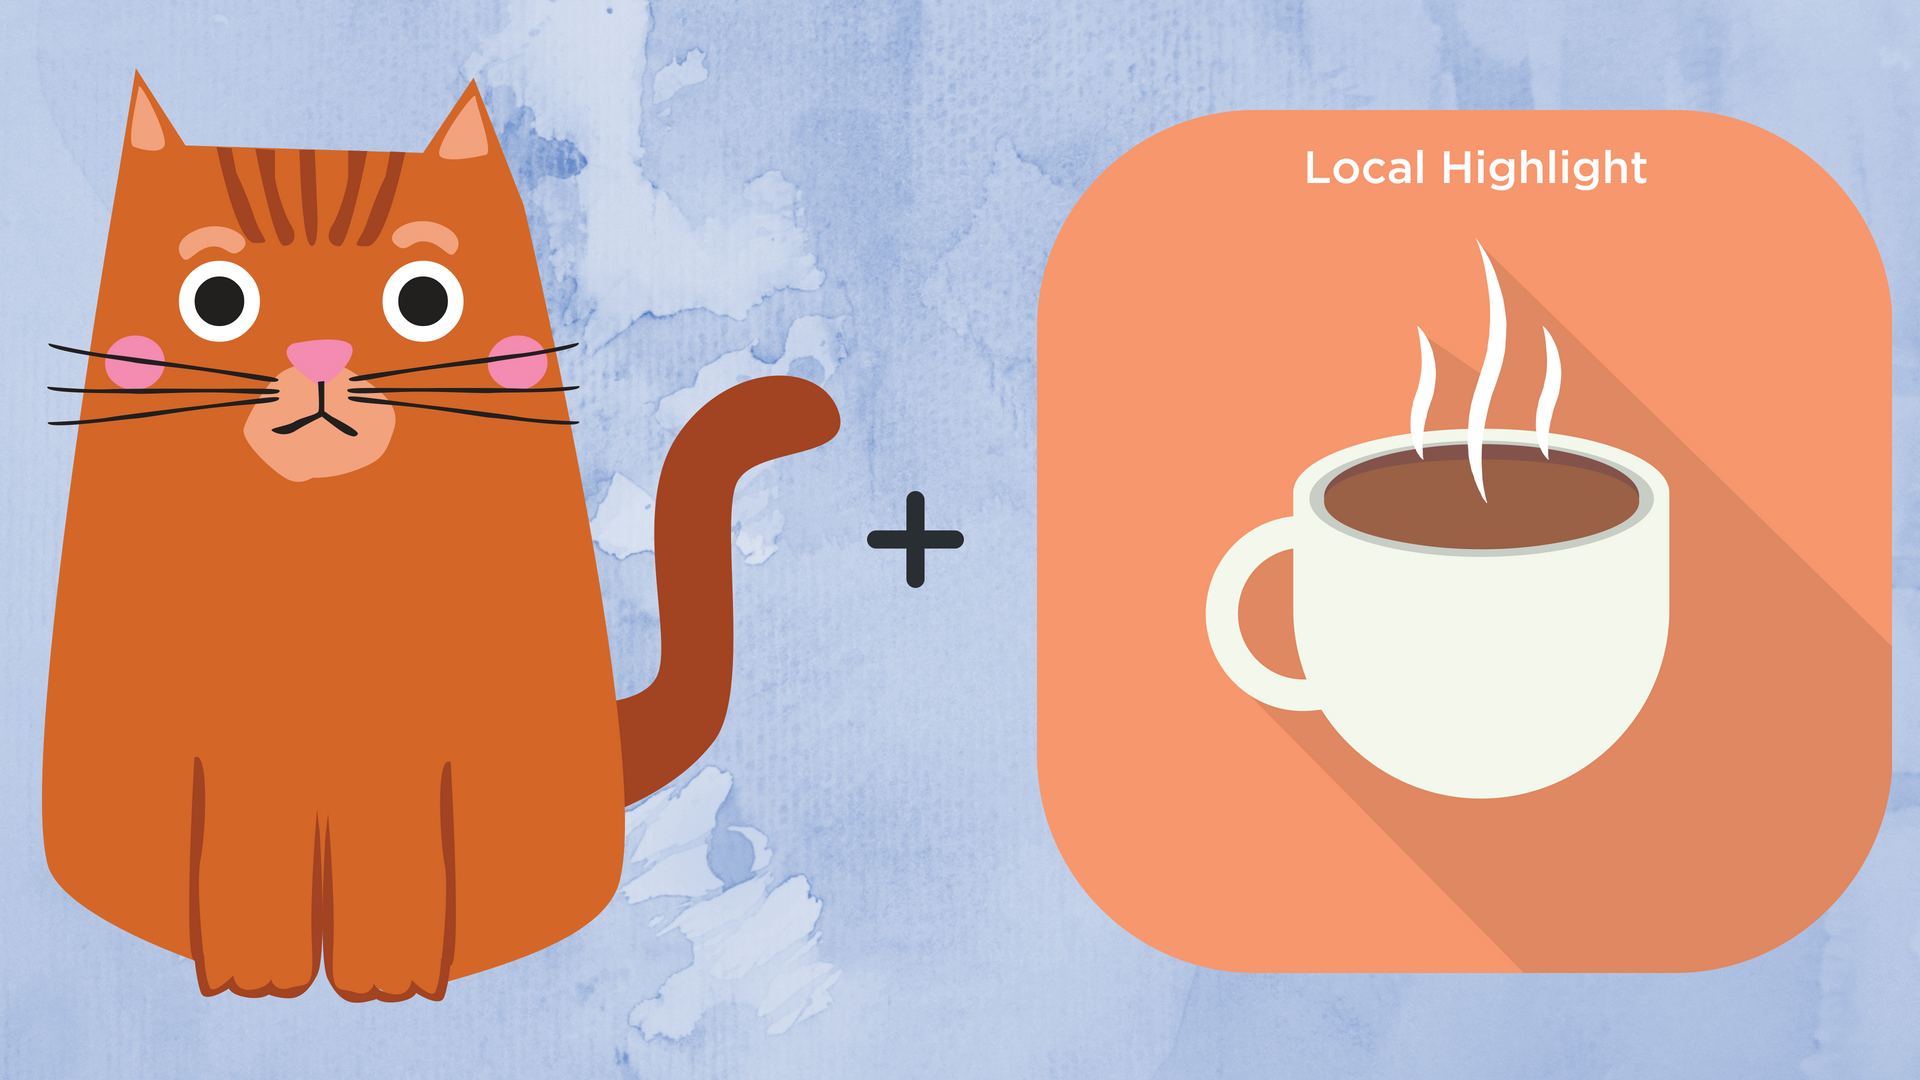 Worn blue background. Cat illustration to the left, plus sign in the middle, coffee in coffee cup on right. Meaning Cat plus Coffee